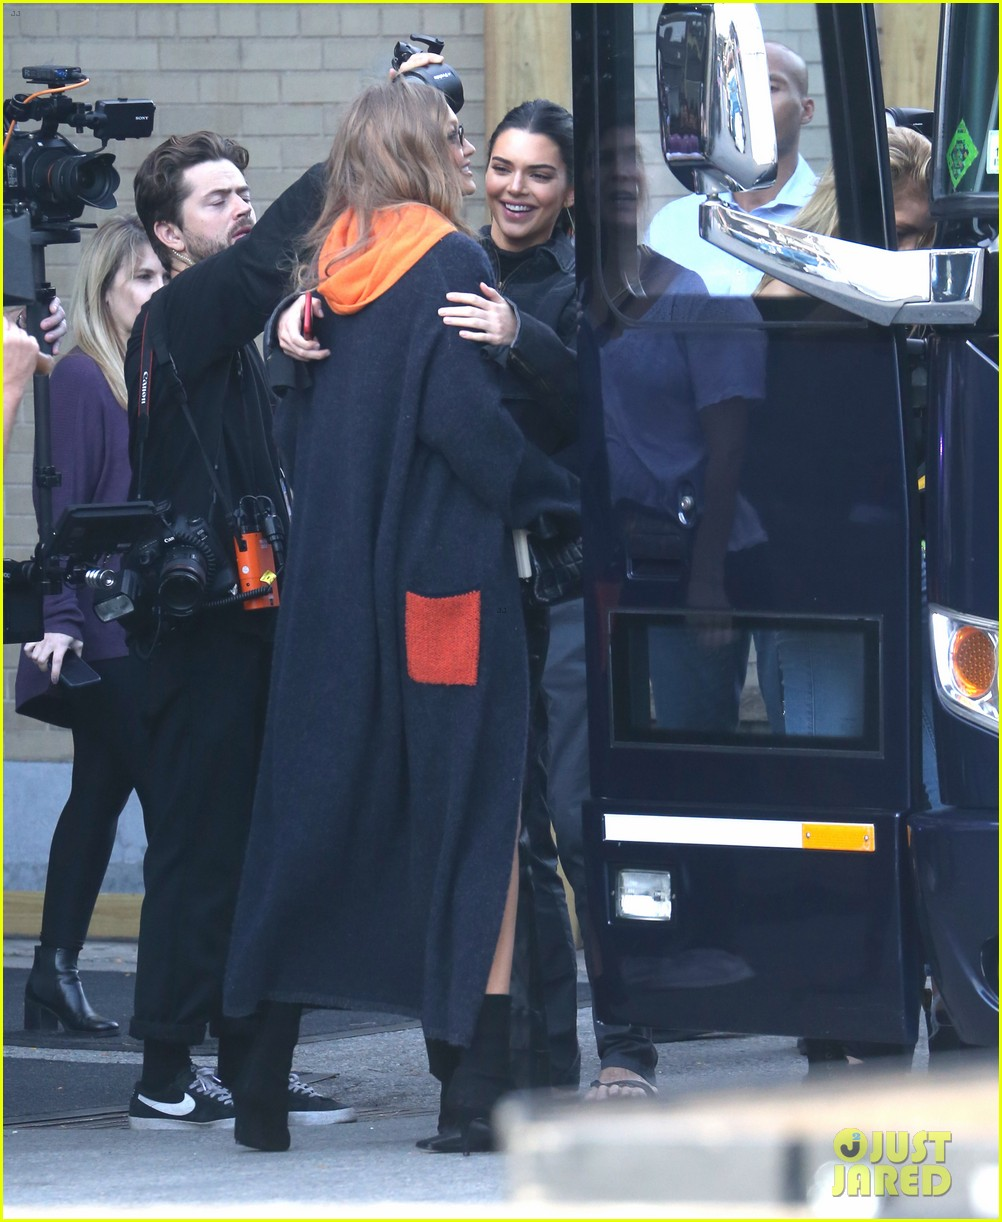 gigi hadid and kendall jenner share a hug outside of victorias secret fashion show rehearsals 08